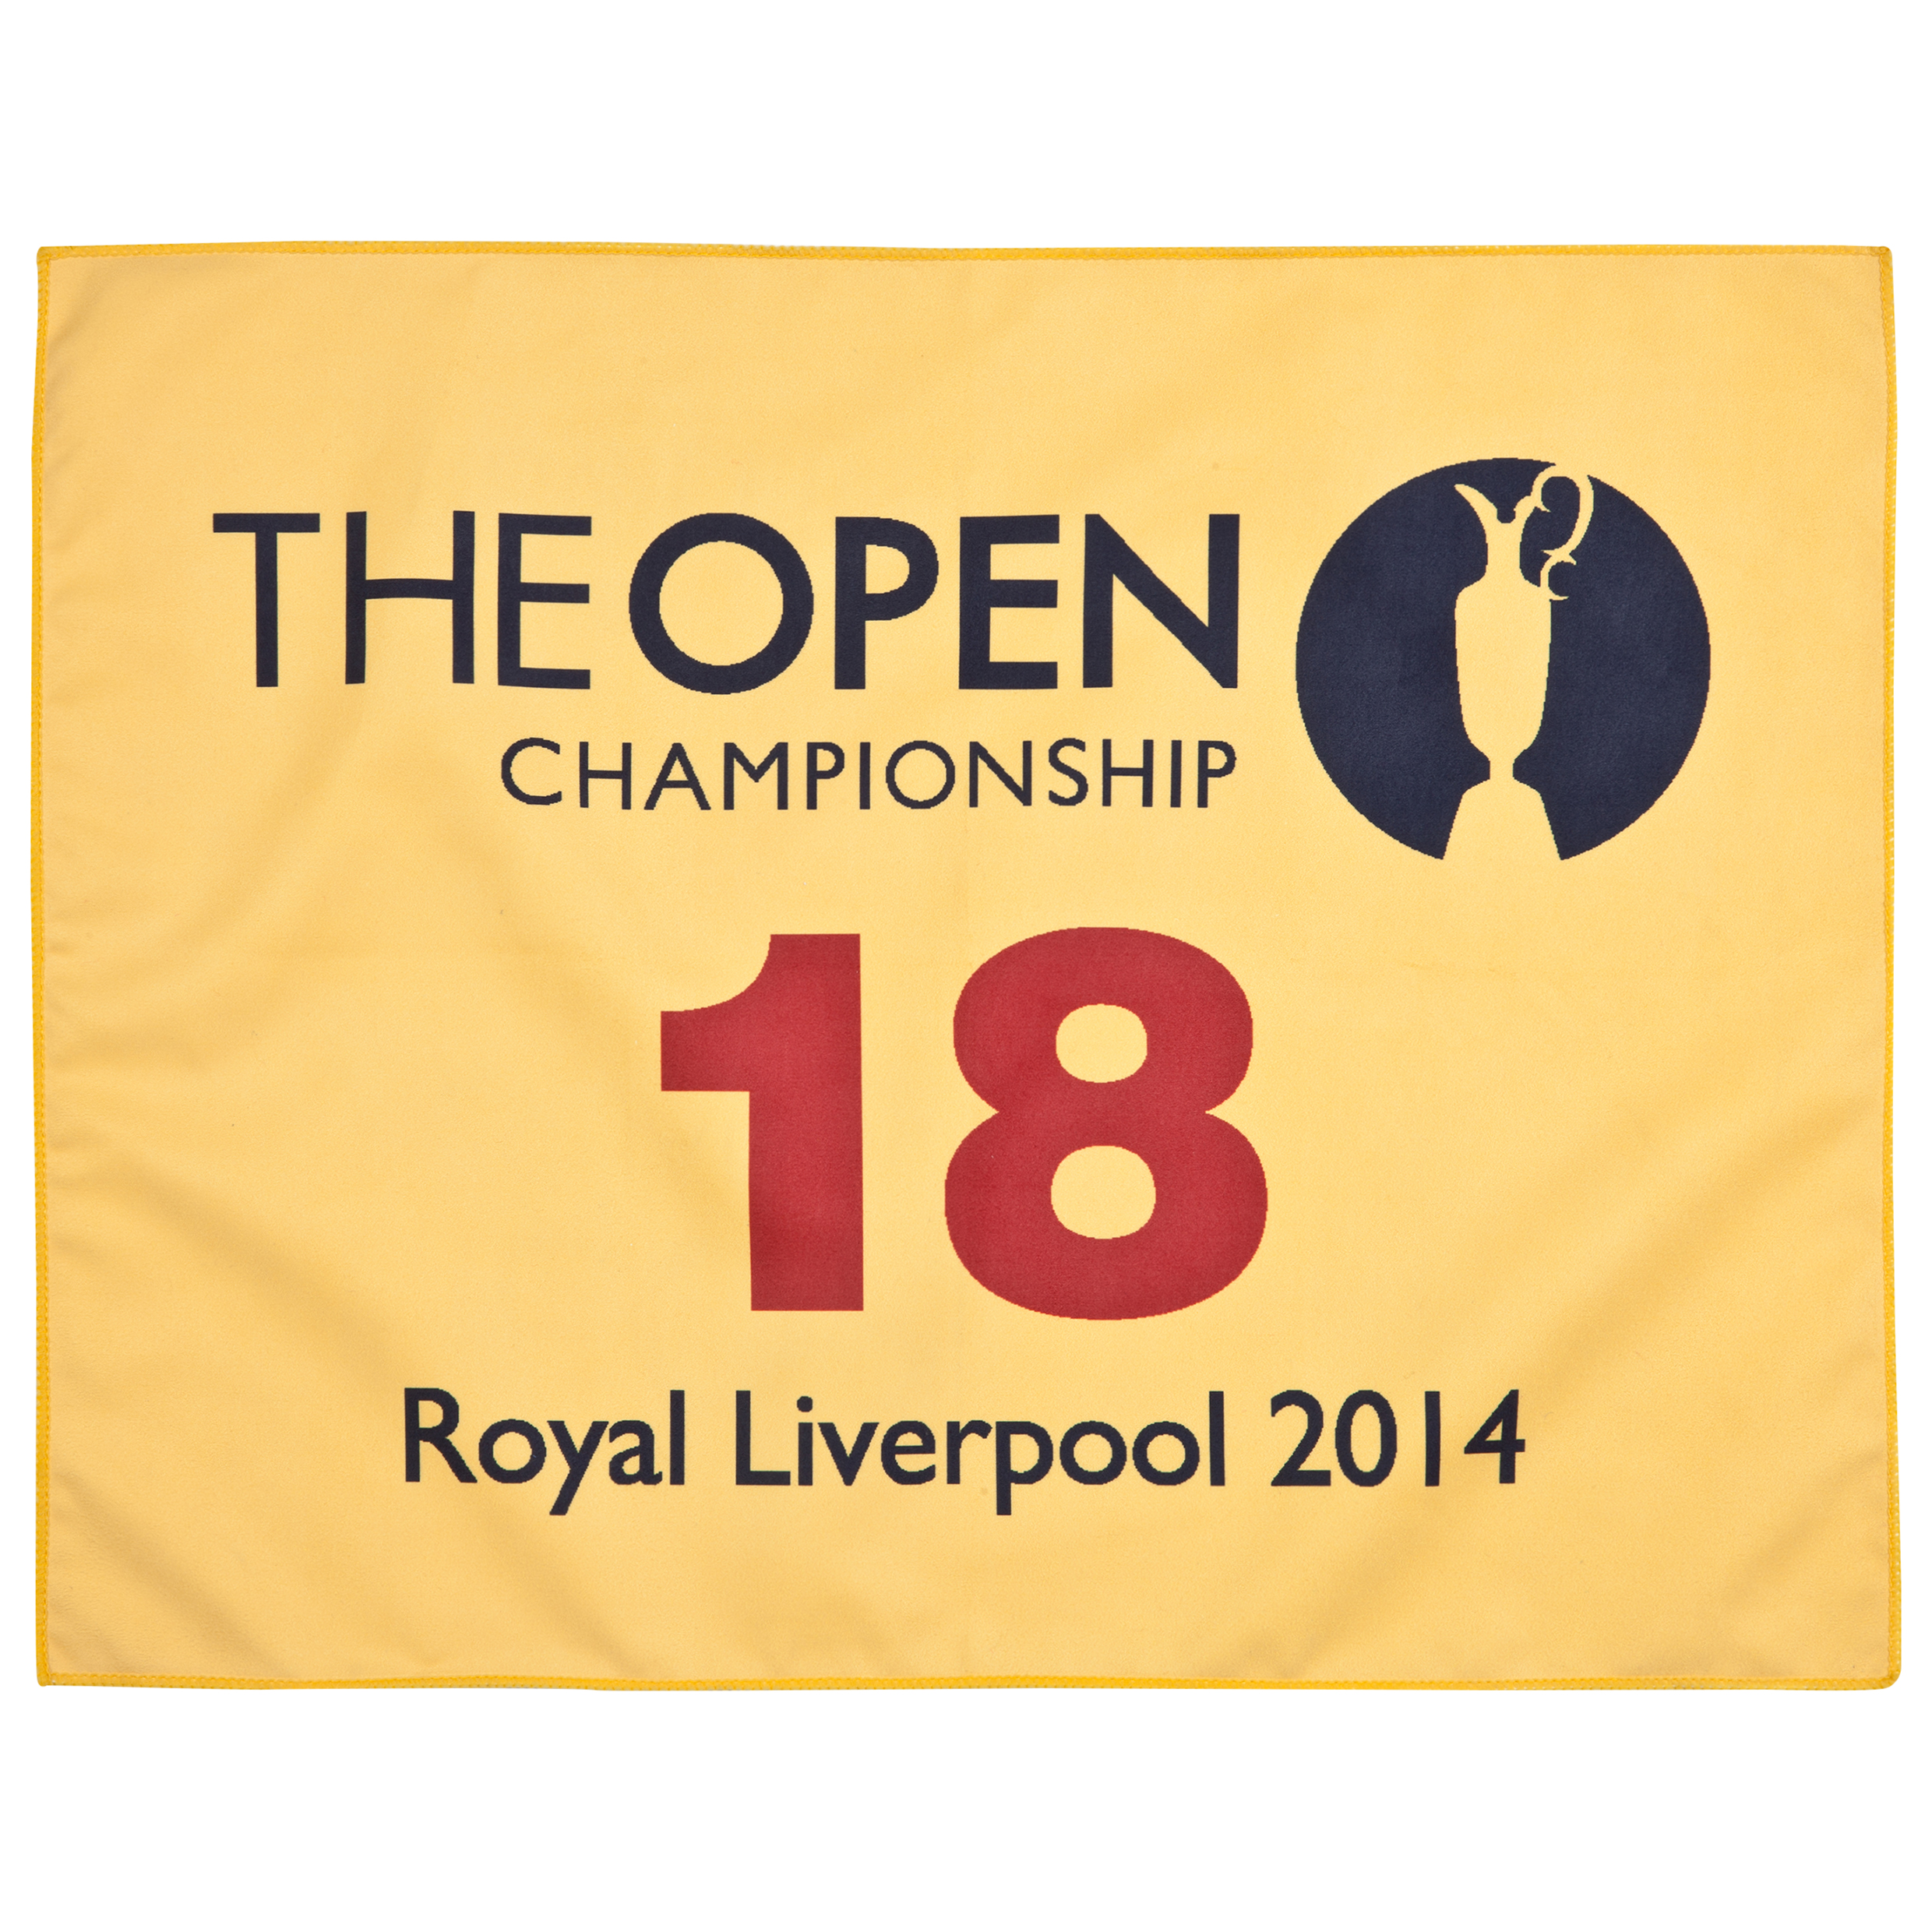 The Open Championship Royal Liverpool 2014 18th Green Yellow Caddie Towel